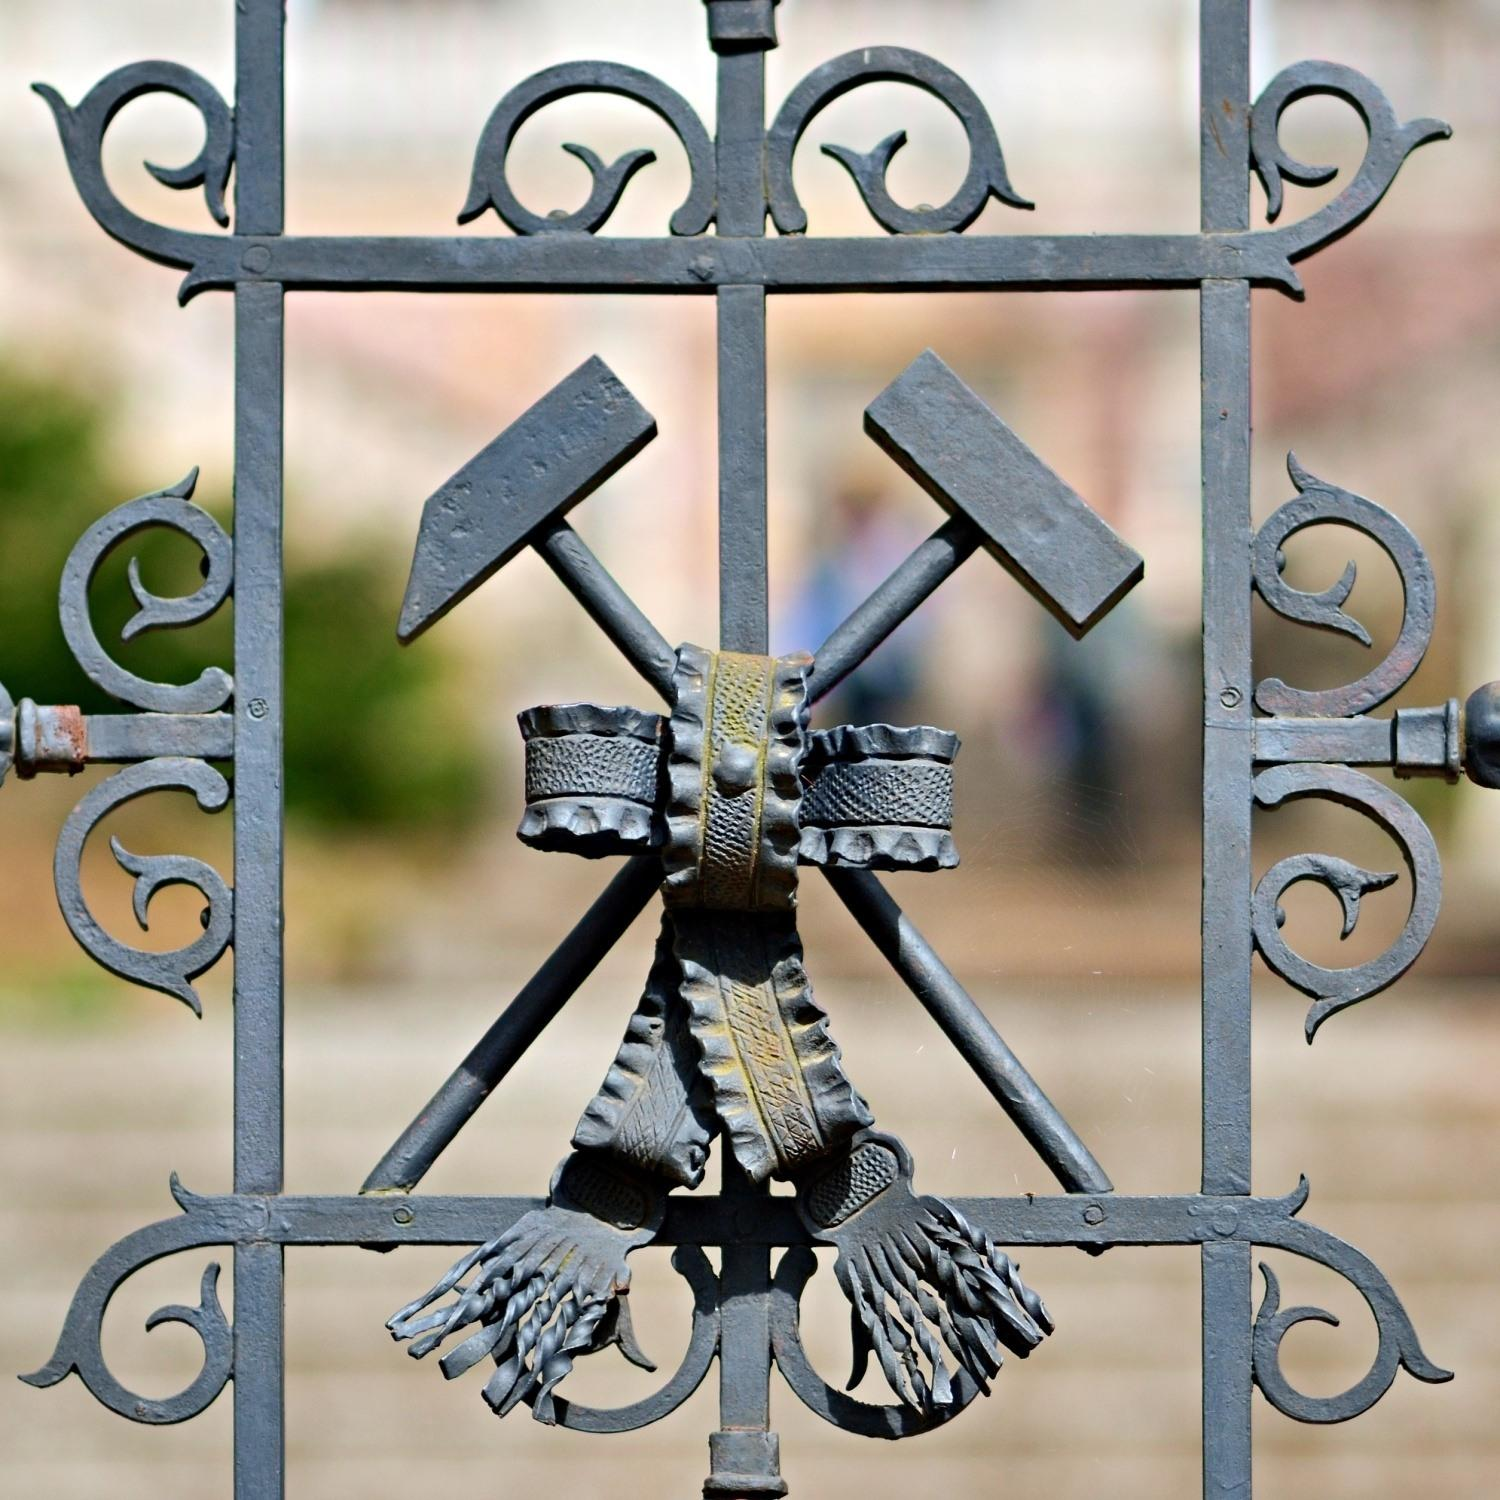 A detail of the mining insignia—hammer and mattock—can be found on the forged entry gate to the Botanical Garden. - © Jan Petrik